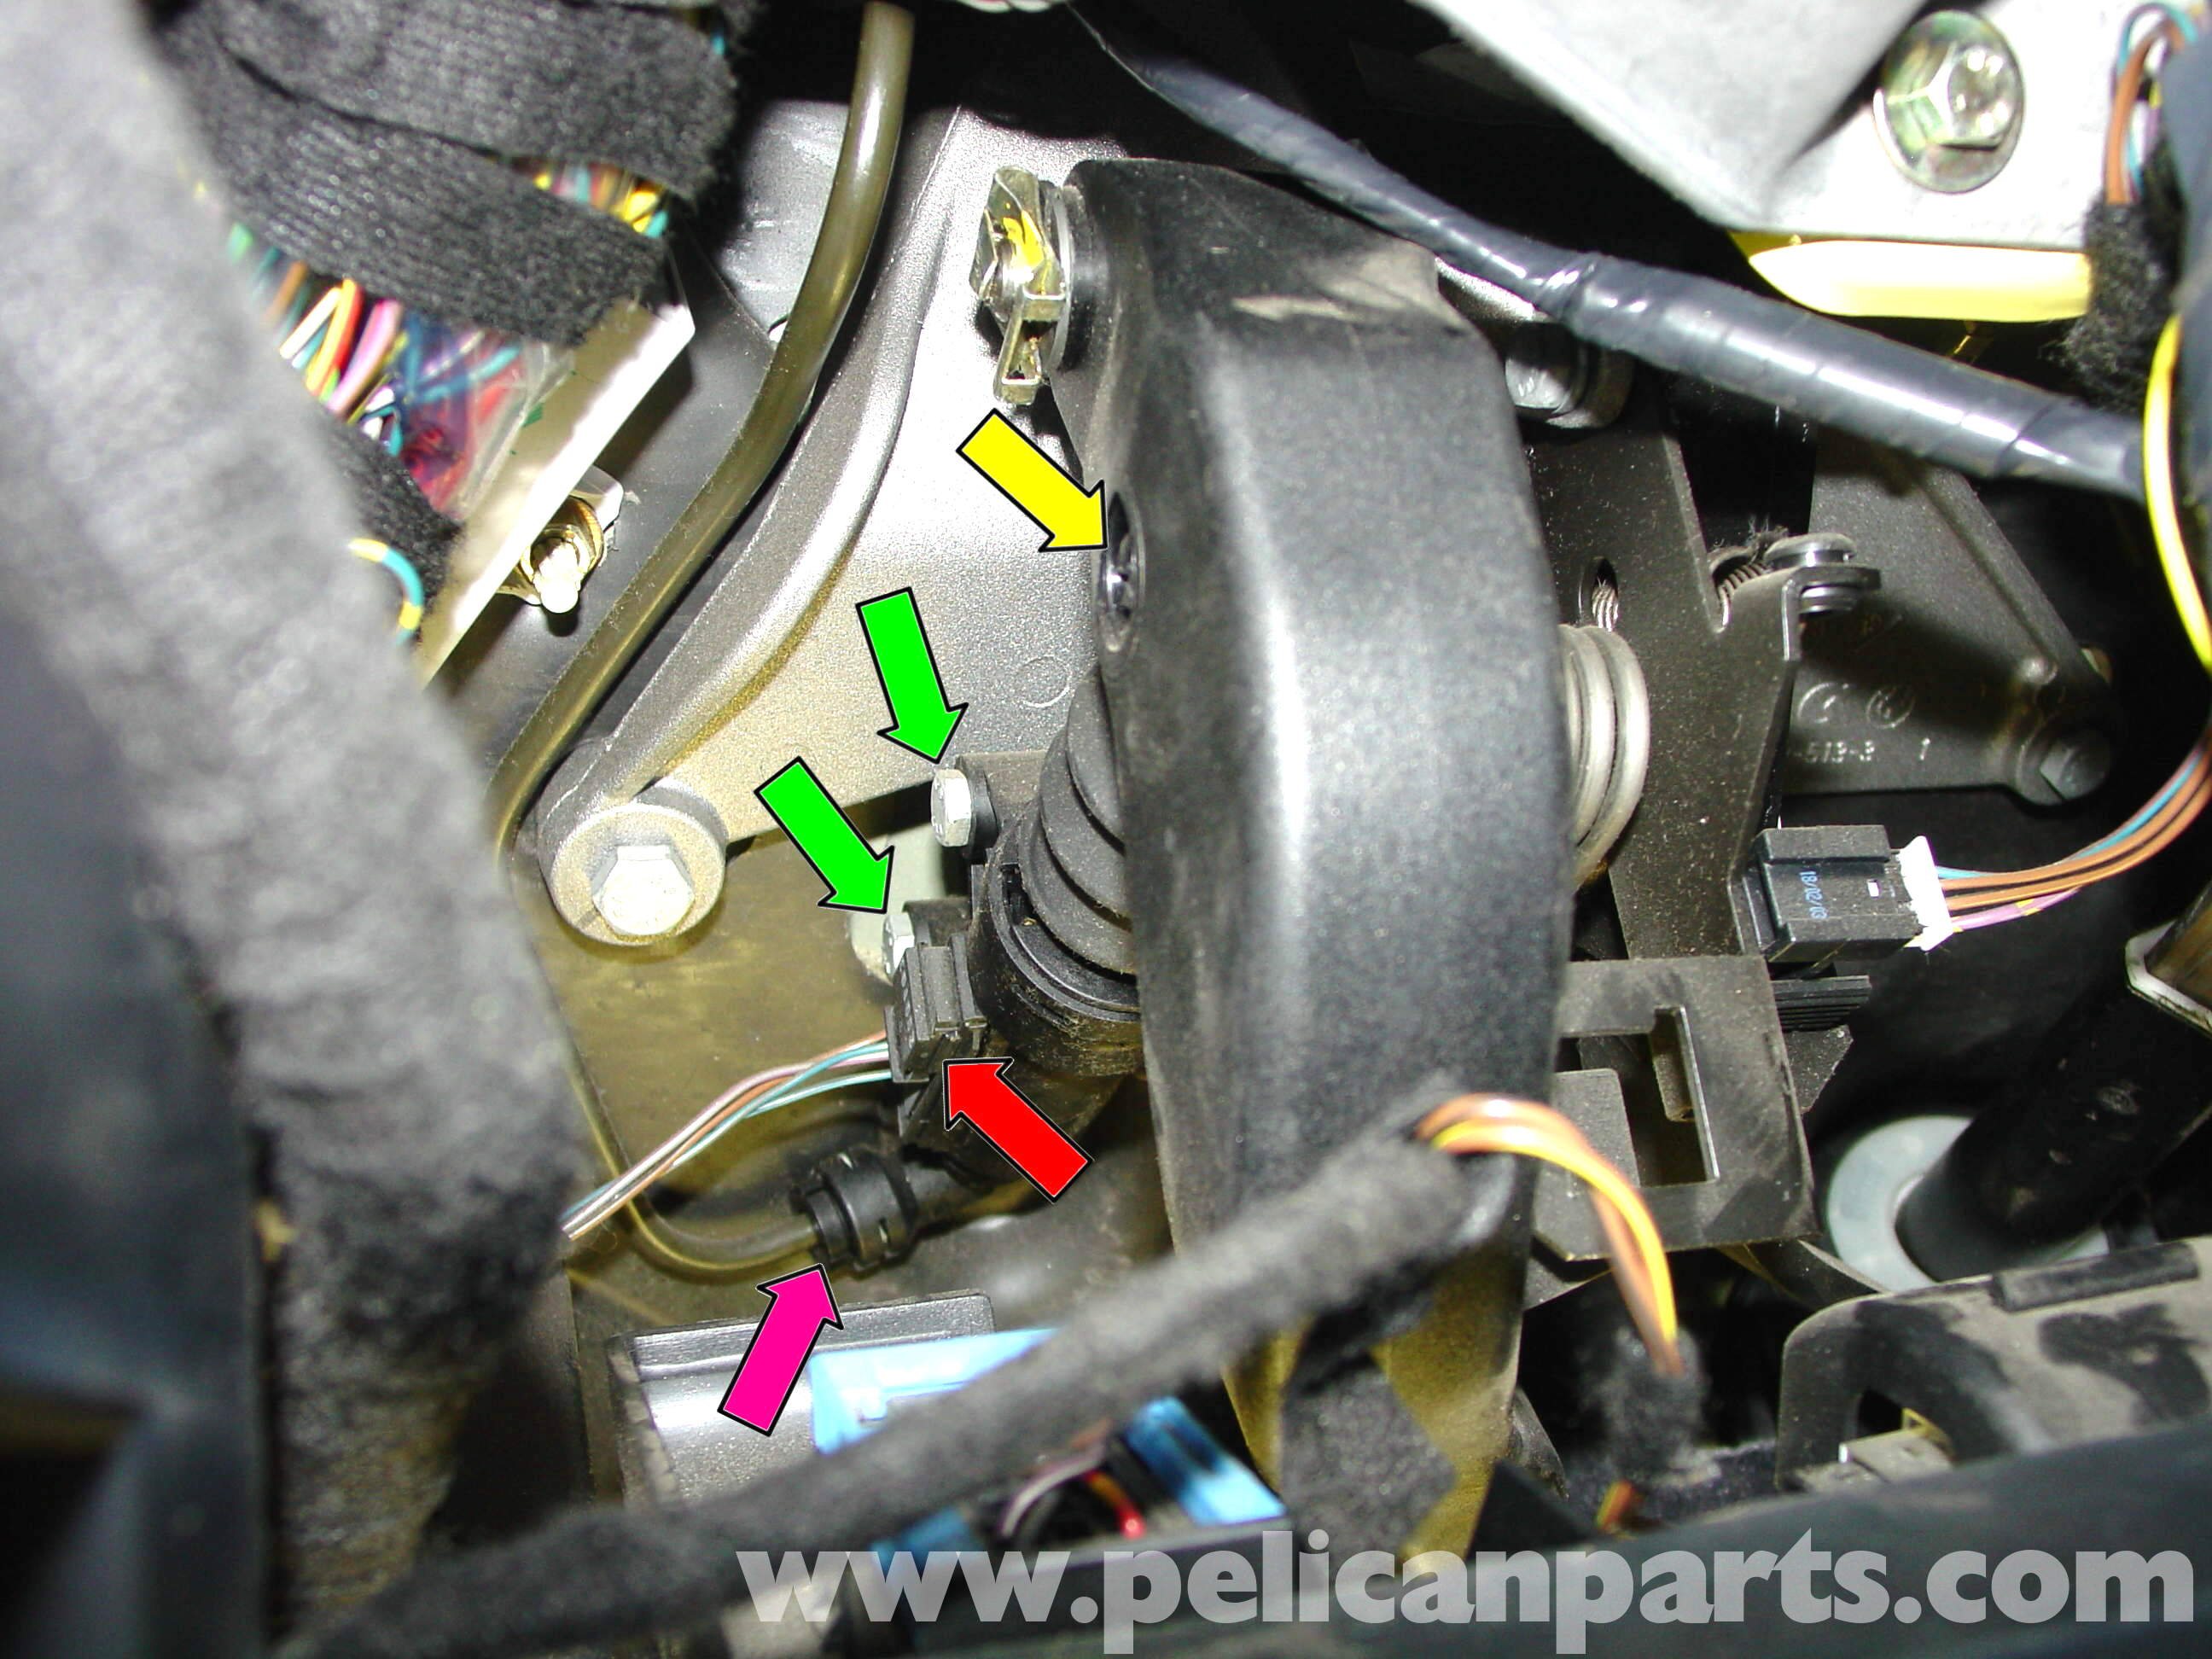 Amazing Mini Cooper S Wiring Diagram Pictures - Everything You Need ...